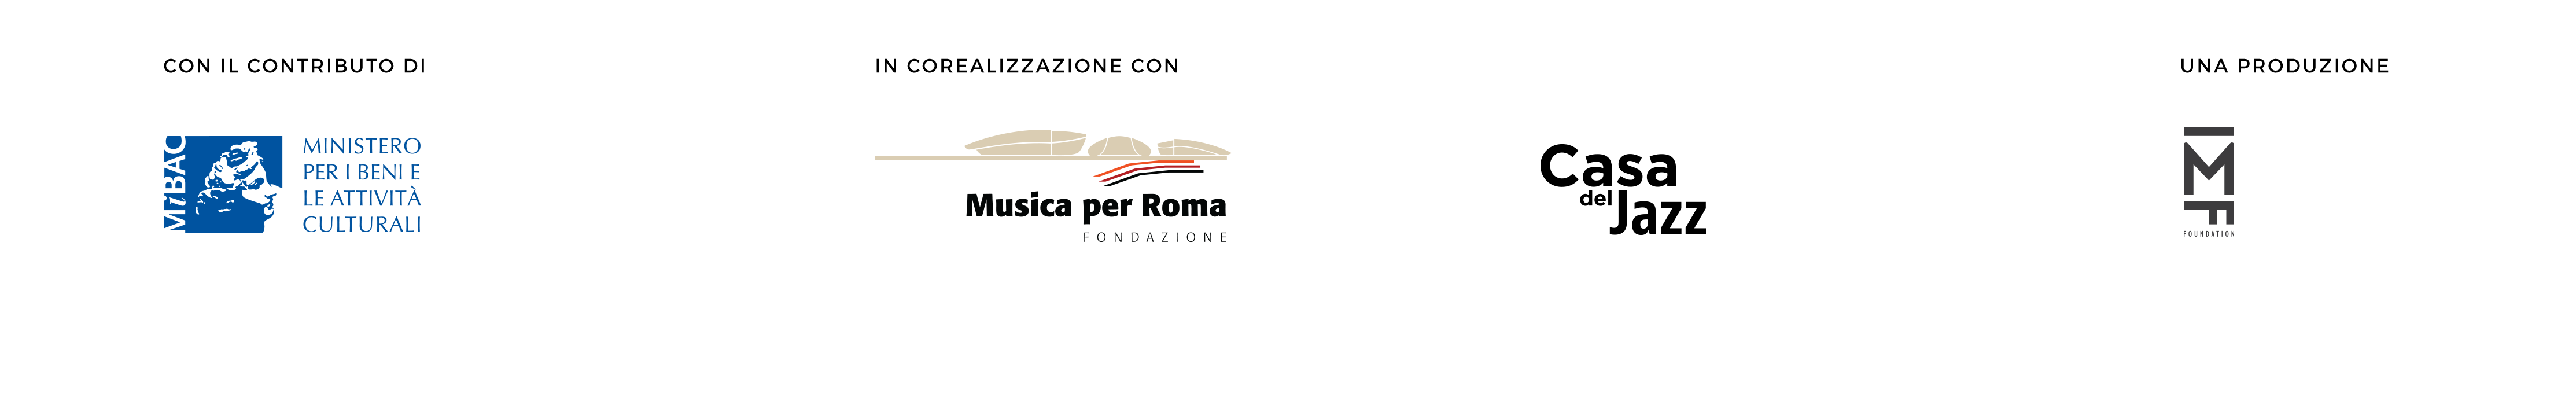 RJF-Footer-home-2019-2